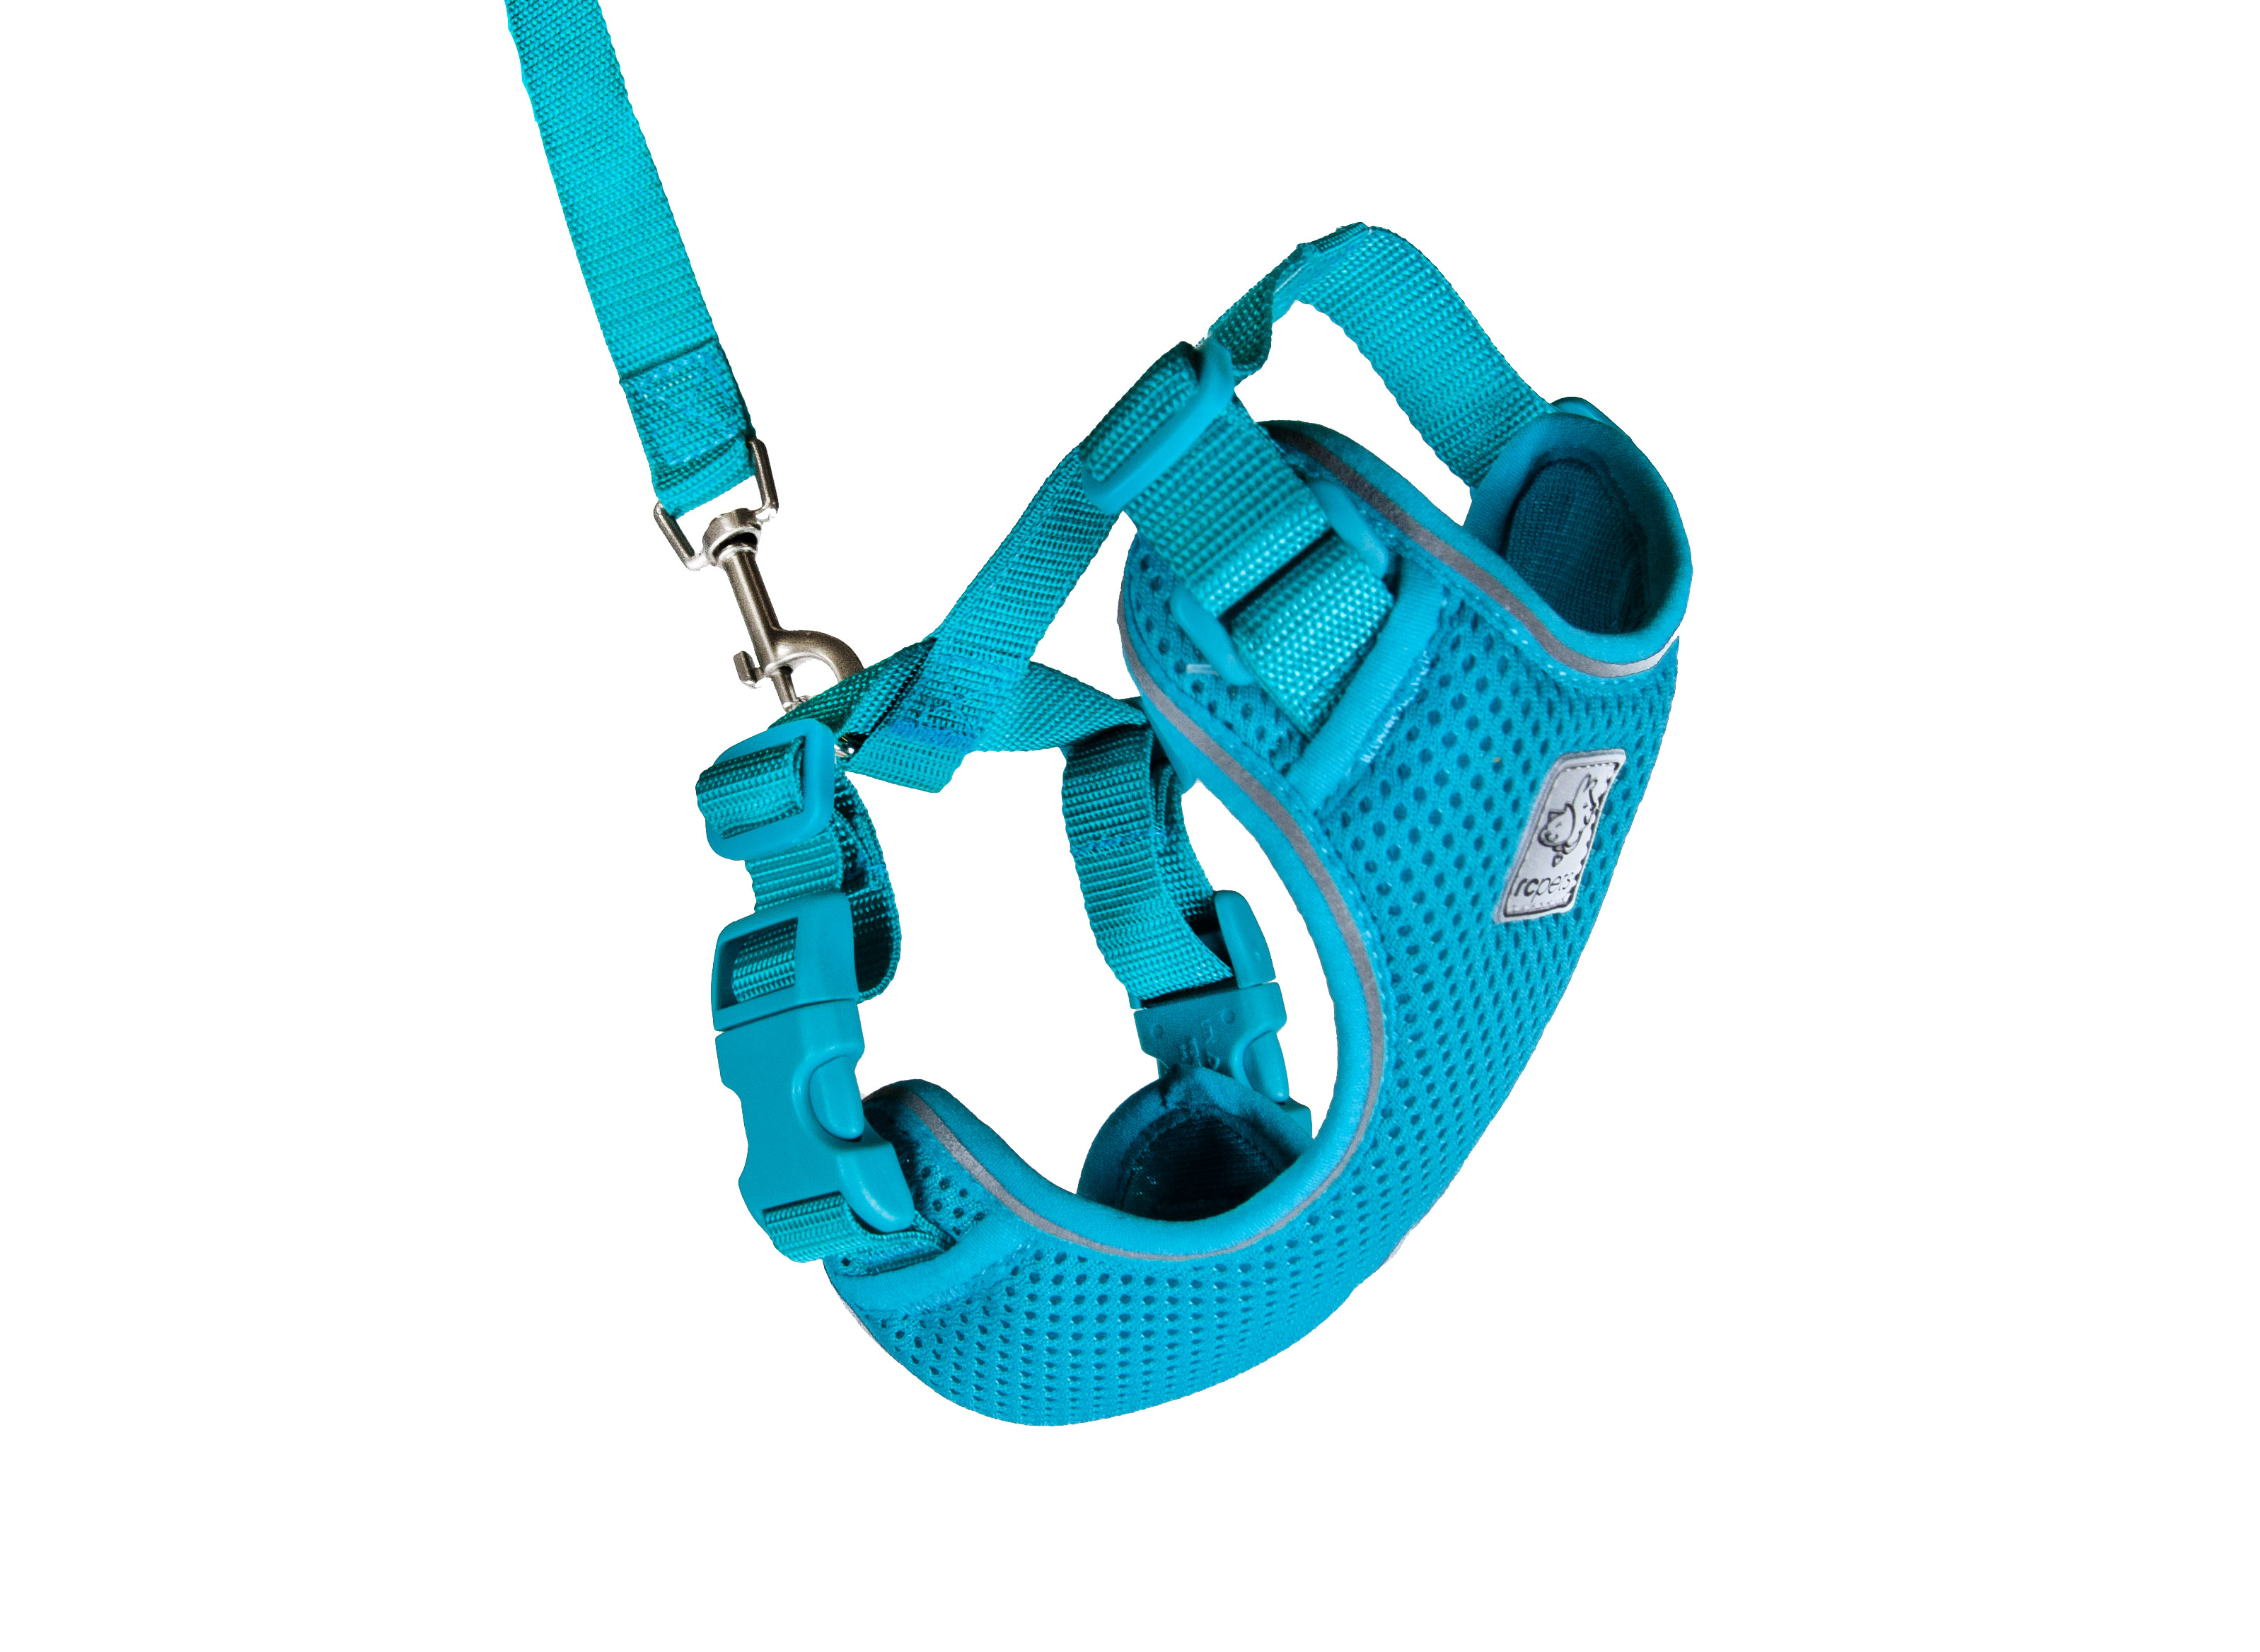 RC Pet Products Adventure Kitty Harness, Teal Image